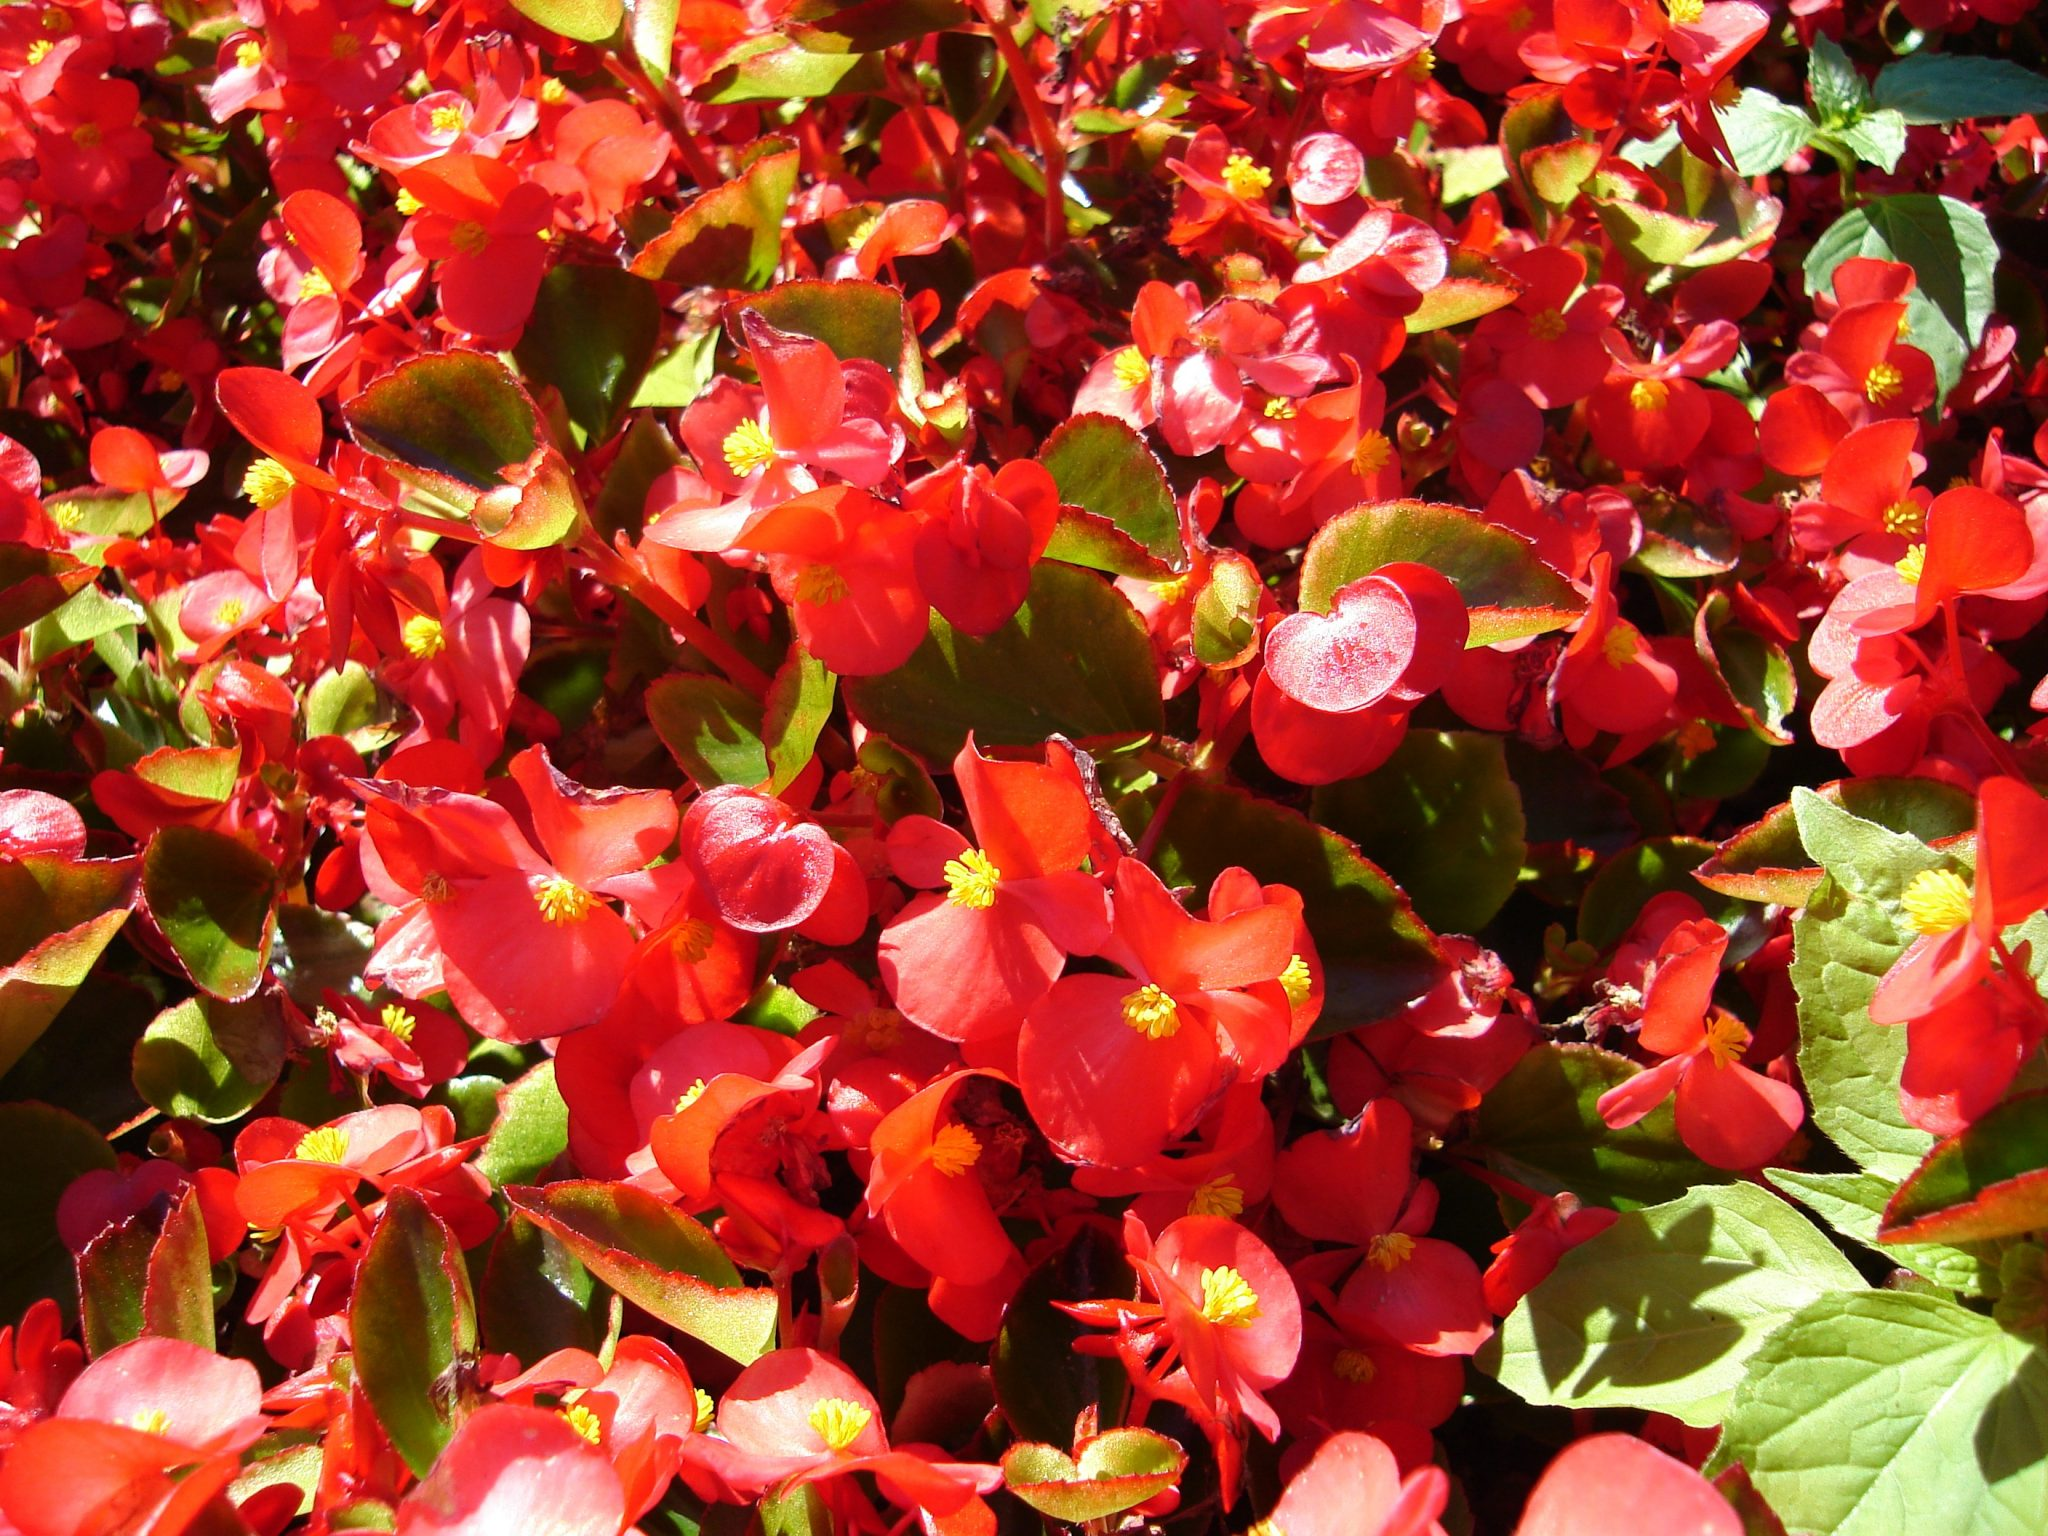 is begonia poisonous for dogs and cats